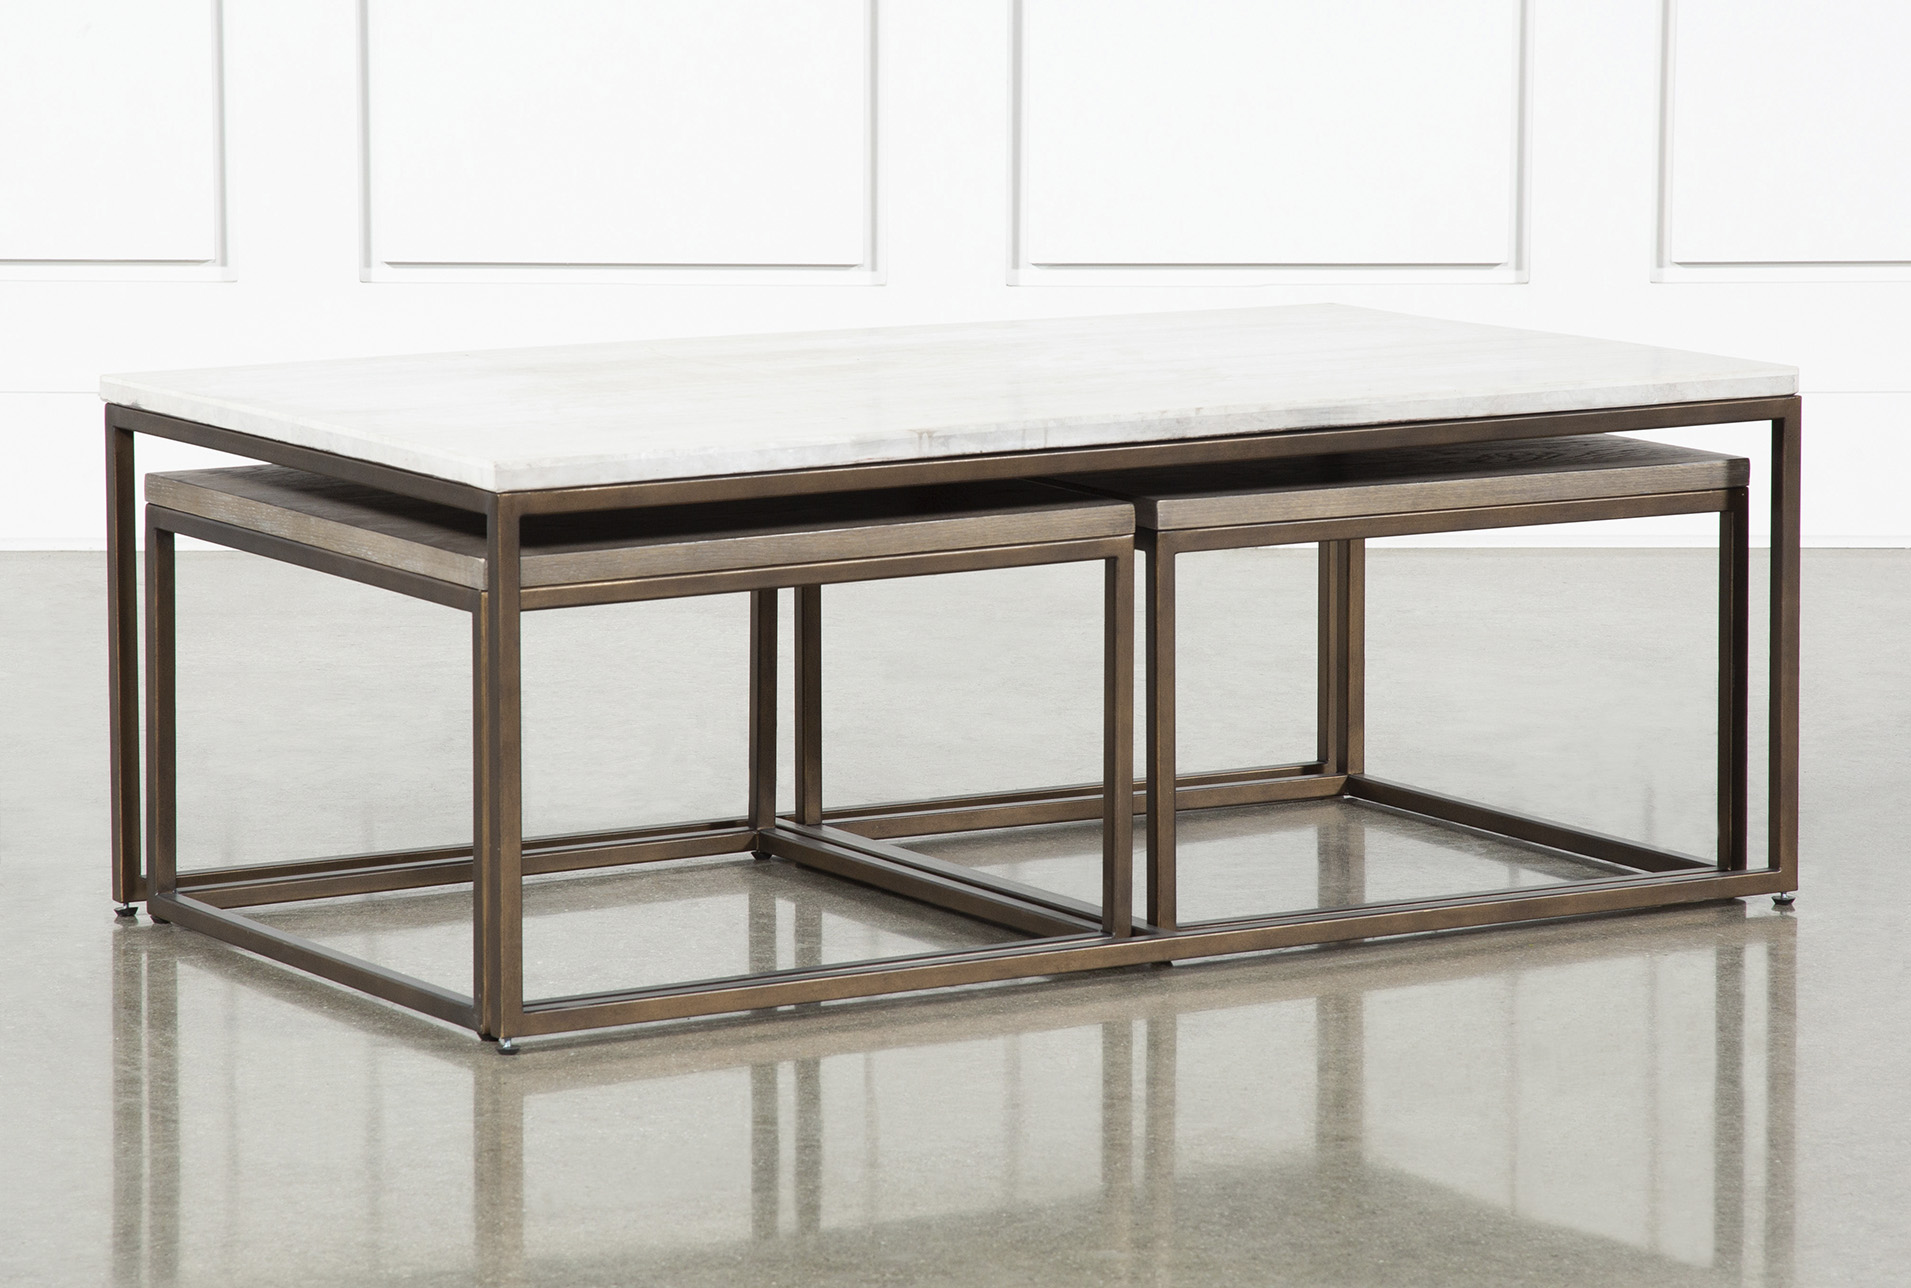 Bon Pavilion Nesting Coffee Tables By Nate Berkus And Jeremiah Brent (Qty: 1)  Has Been Successfully Added To Your Cart.